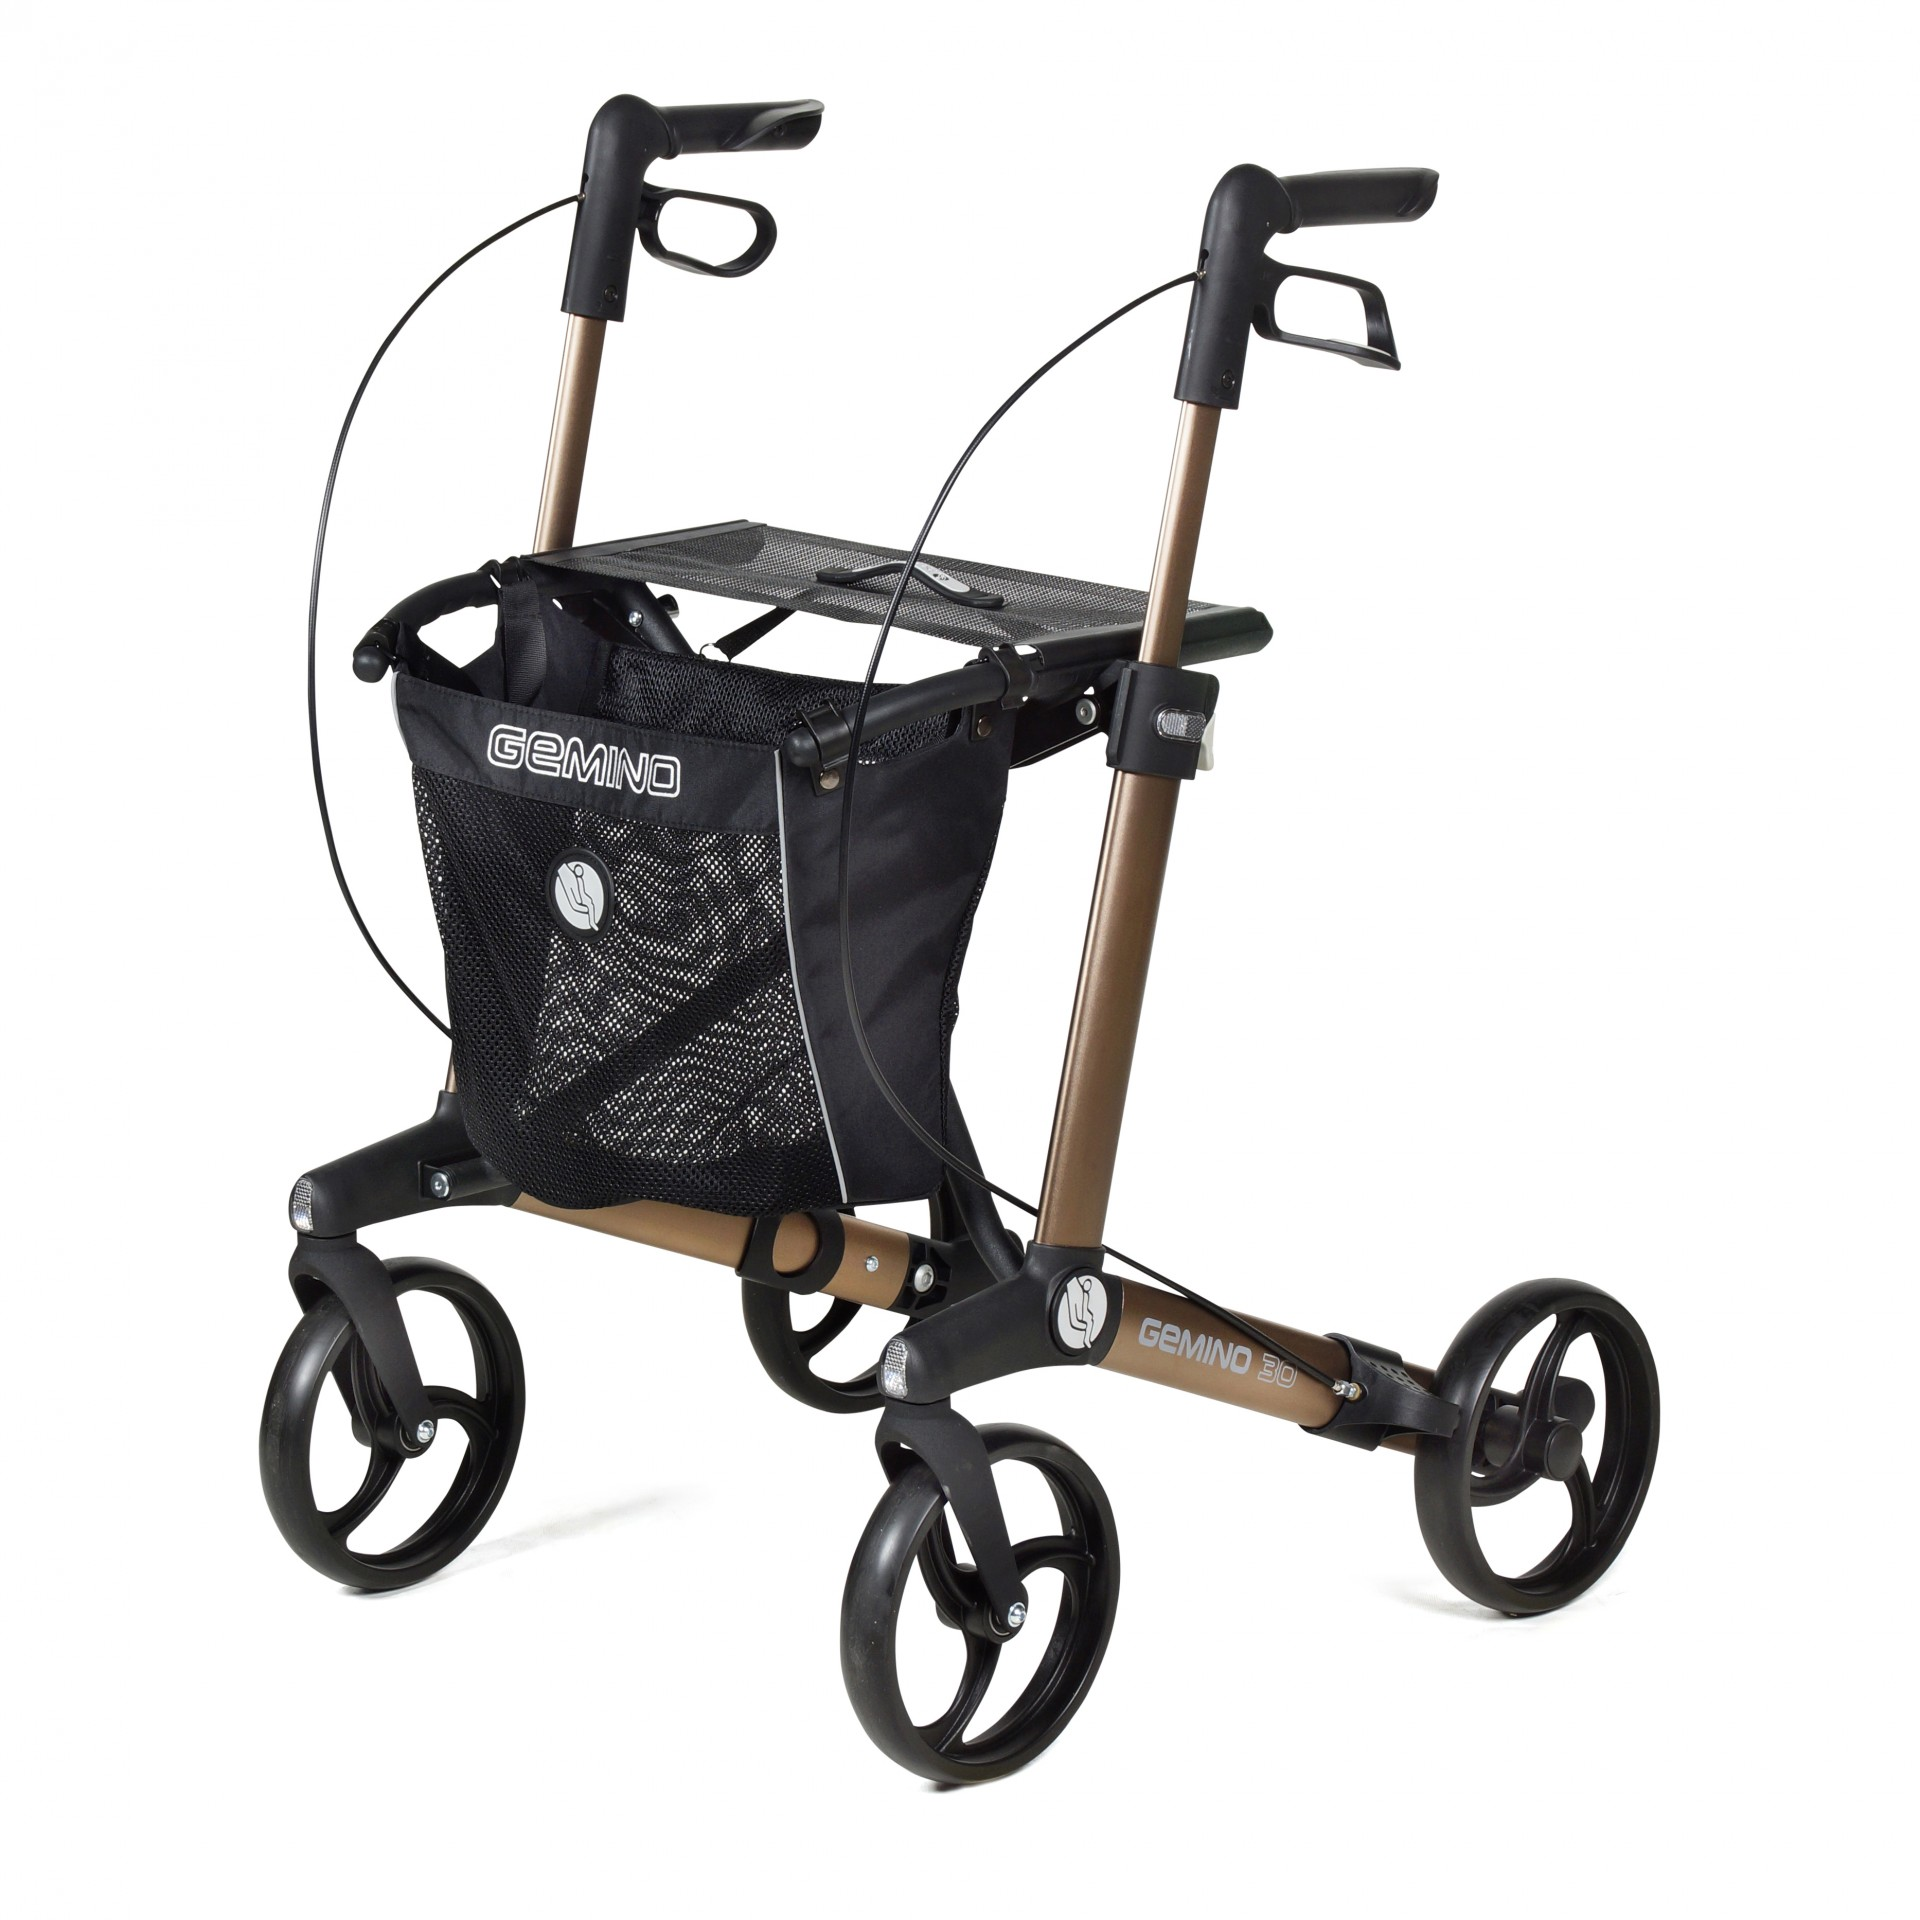 Gemino 30 rollator van Sunrise Medical in de kleur bronze